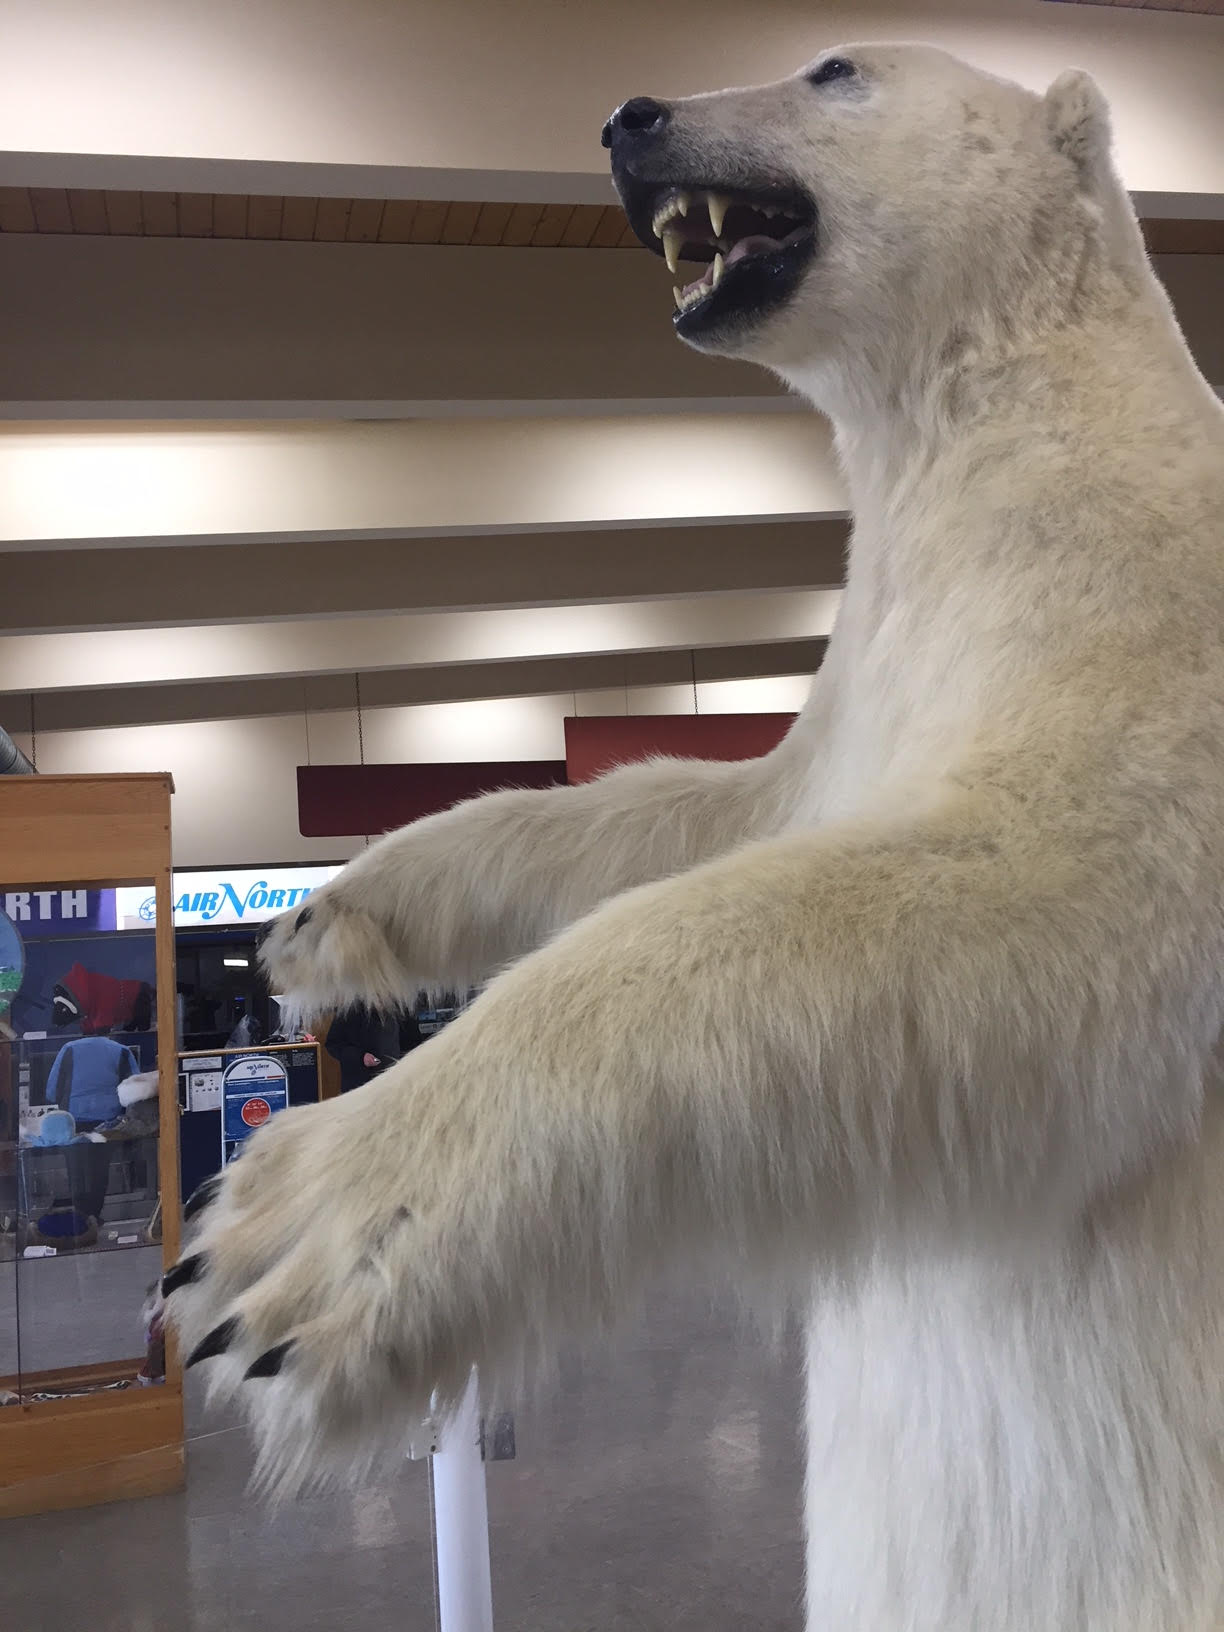 More time to learn about the taxidermy polar bear